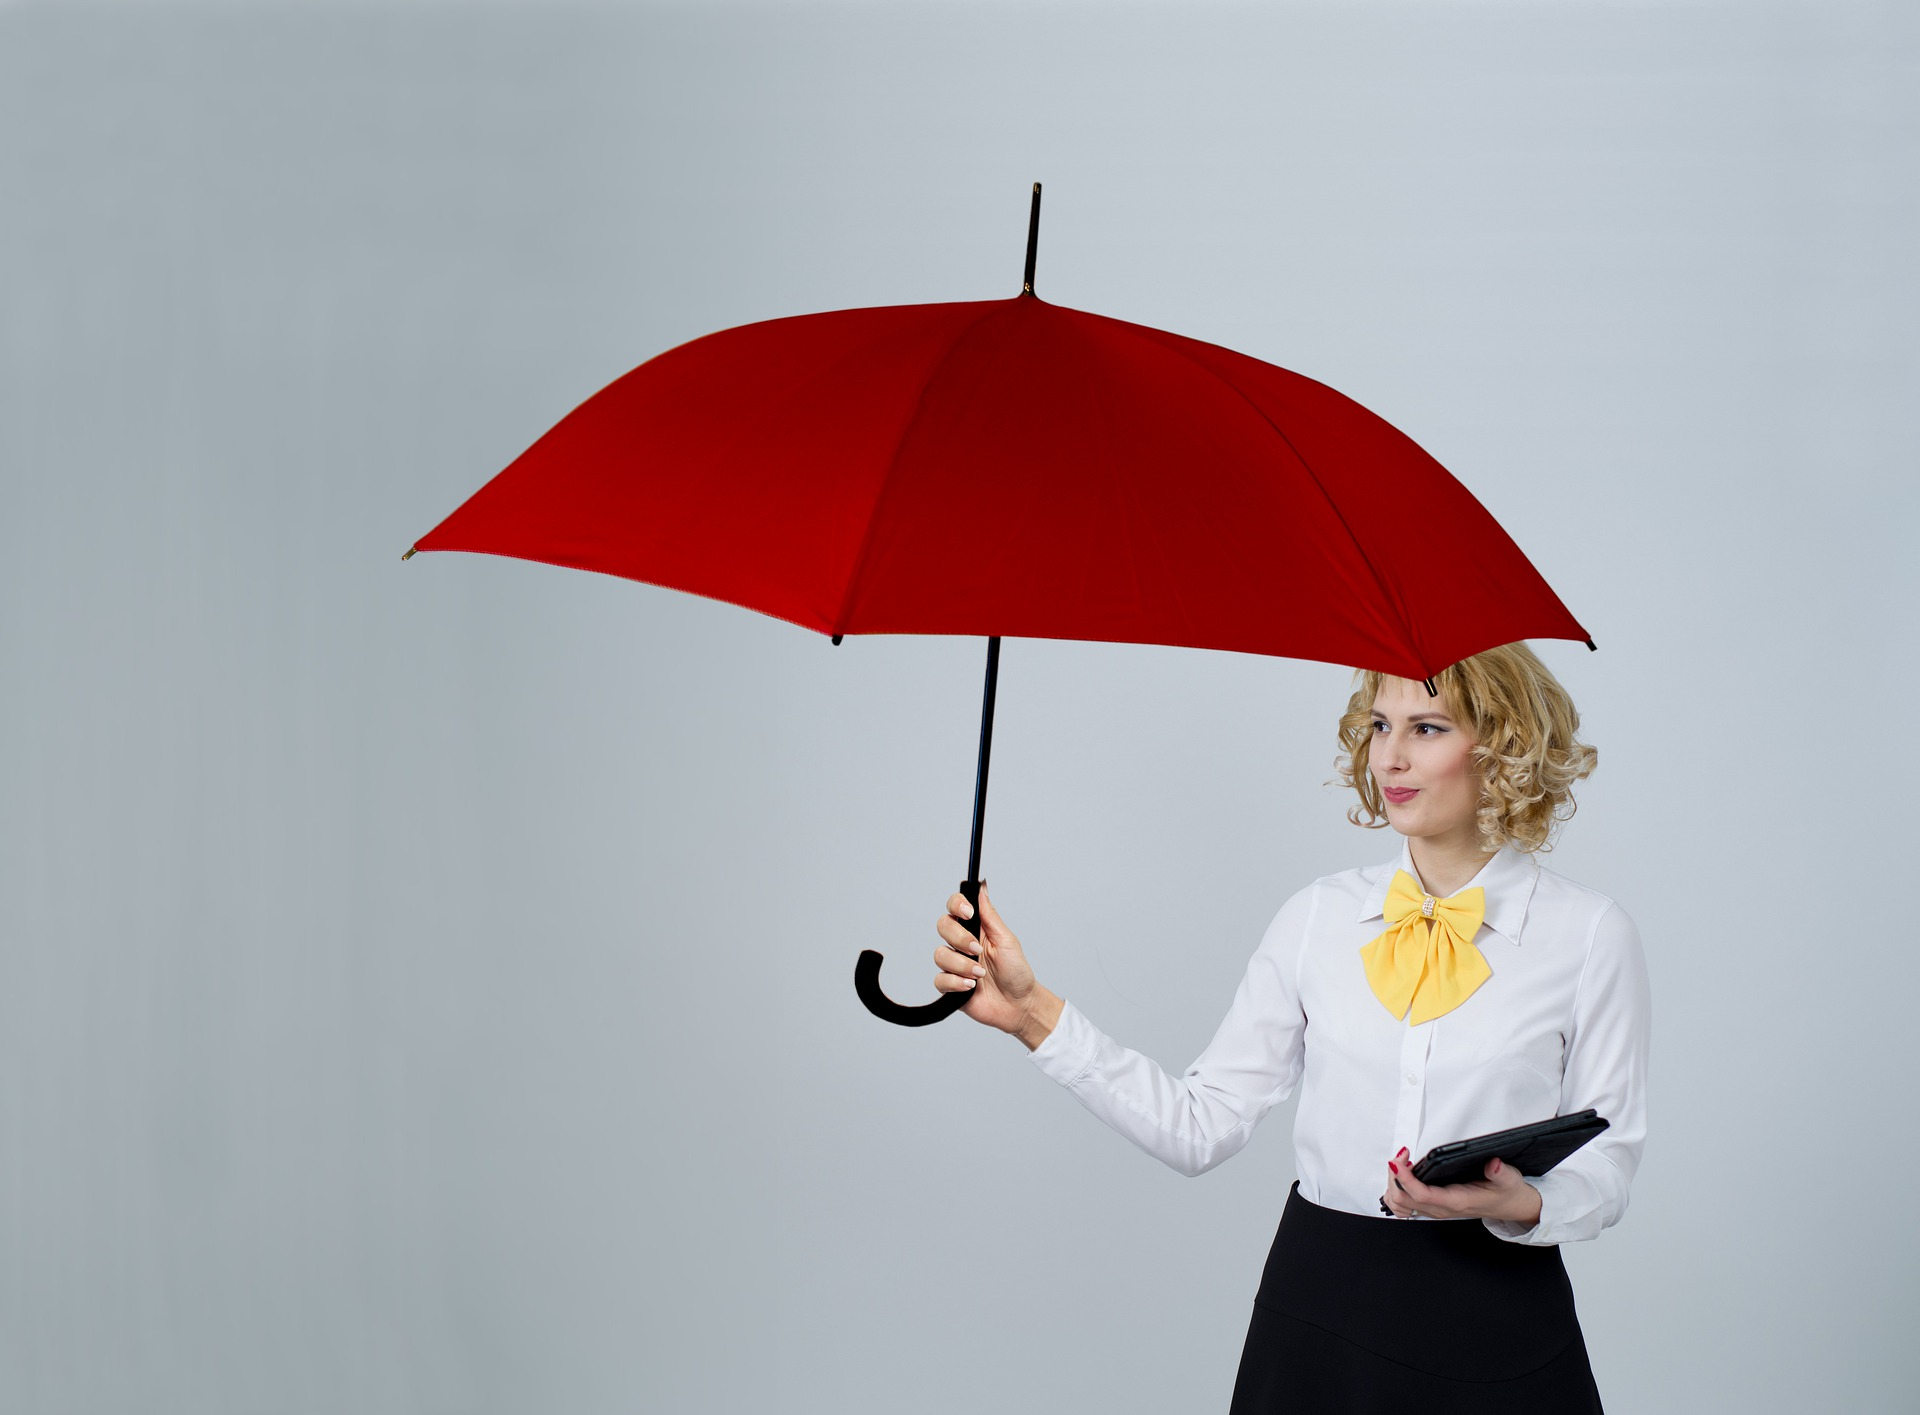 Business interruption insurance pay-outs